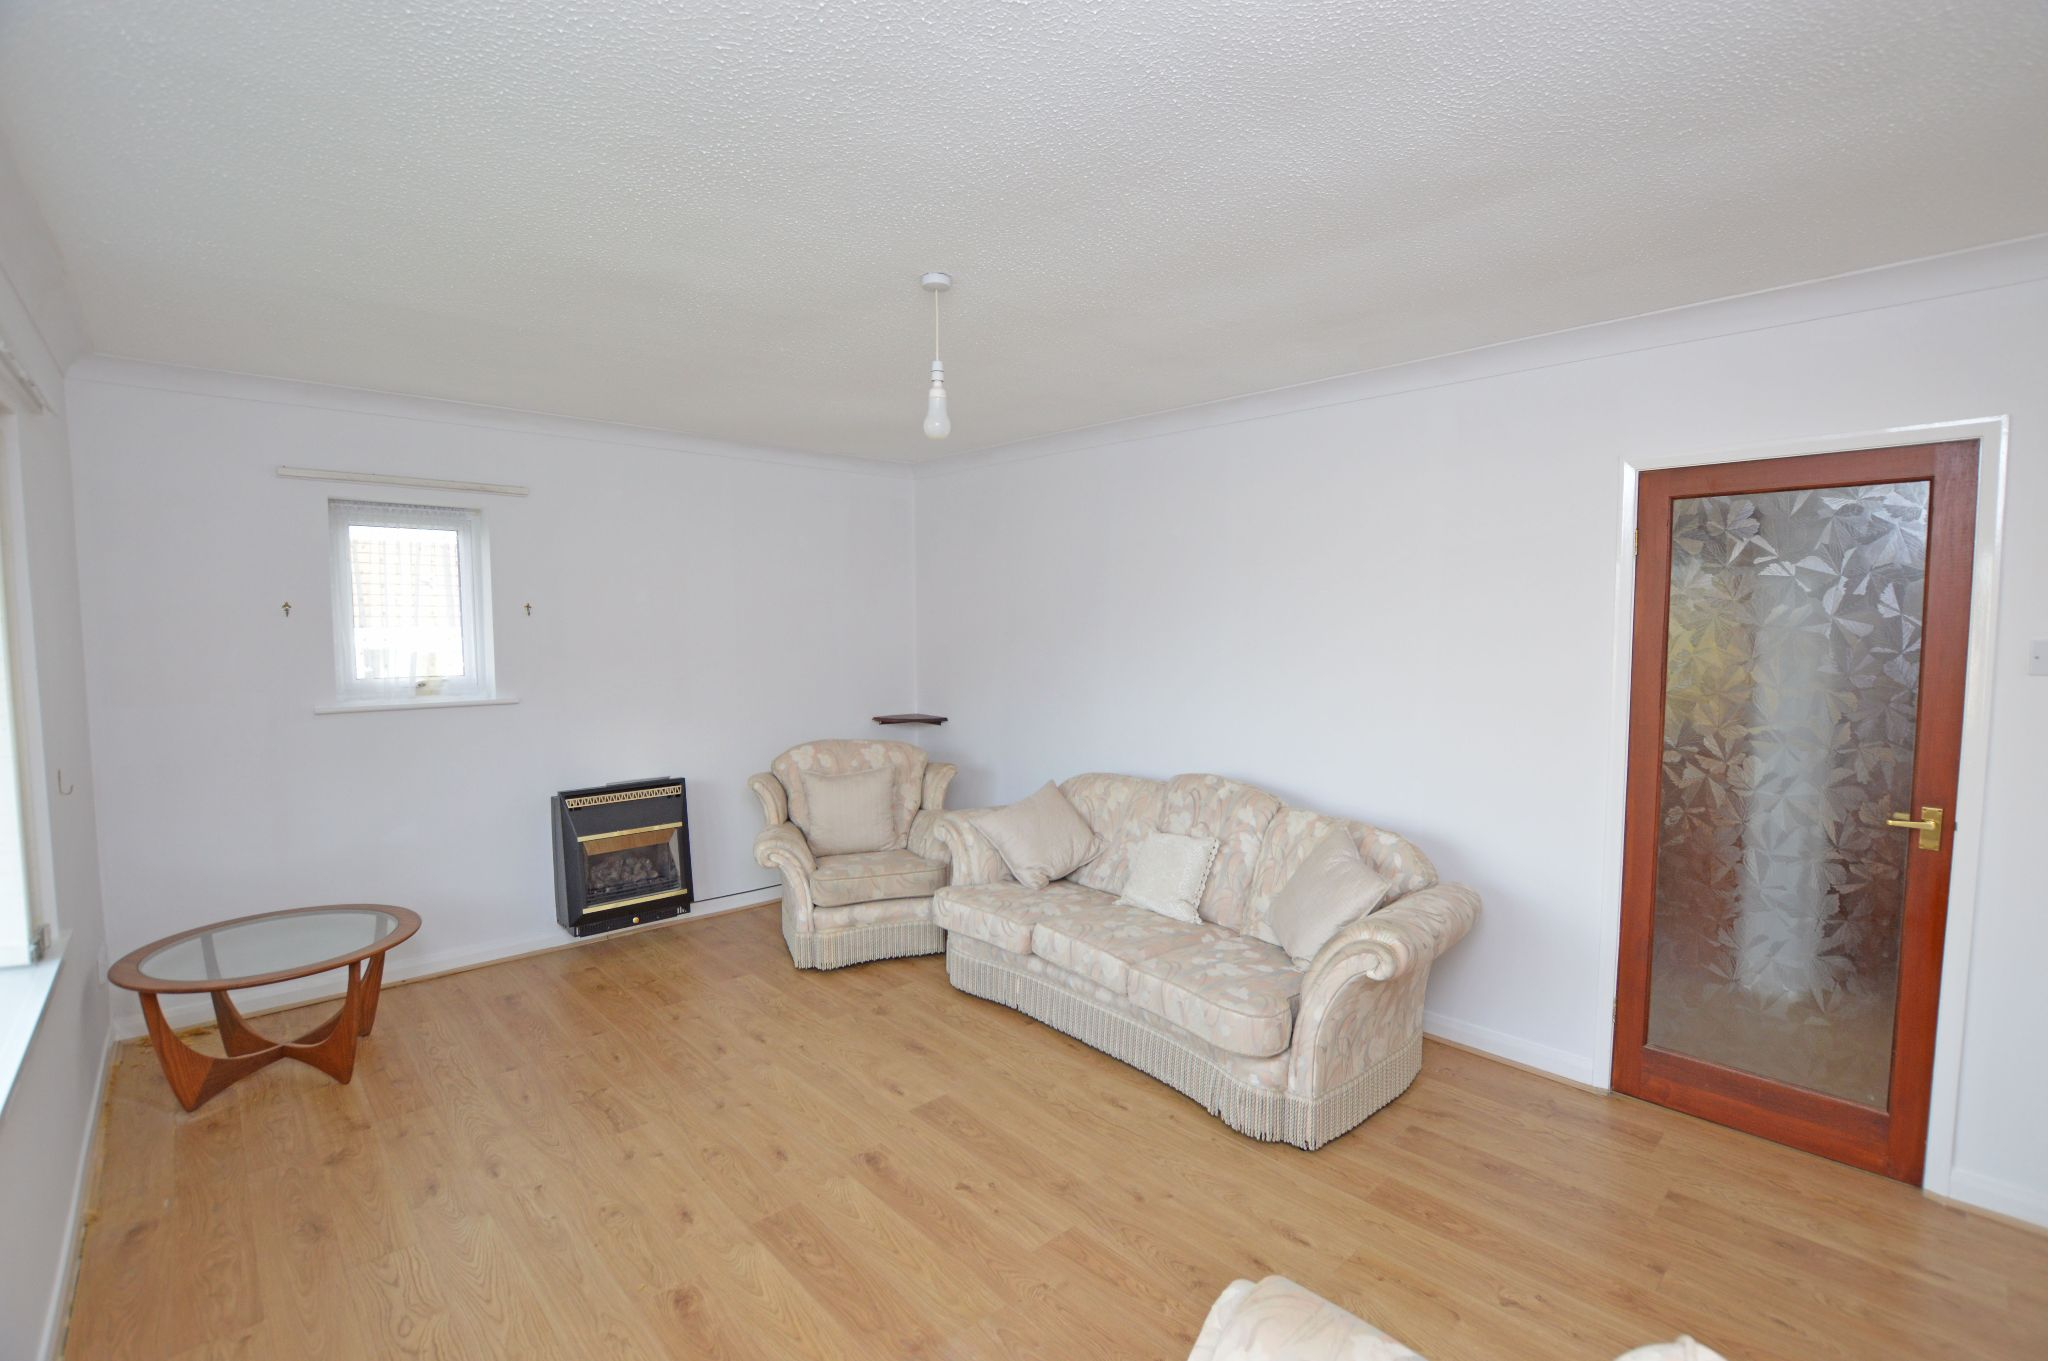 2 bedroom detached bungalow Under Offer in Abergele - Lounge View 2